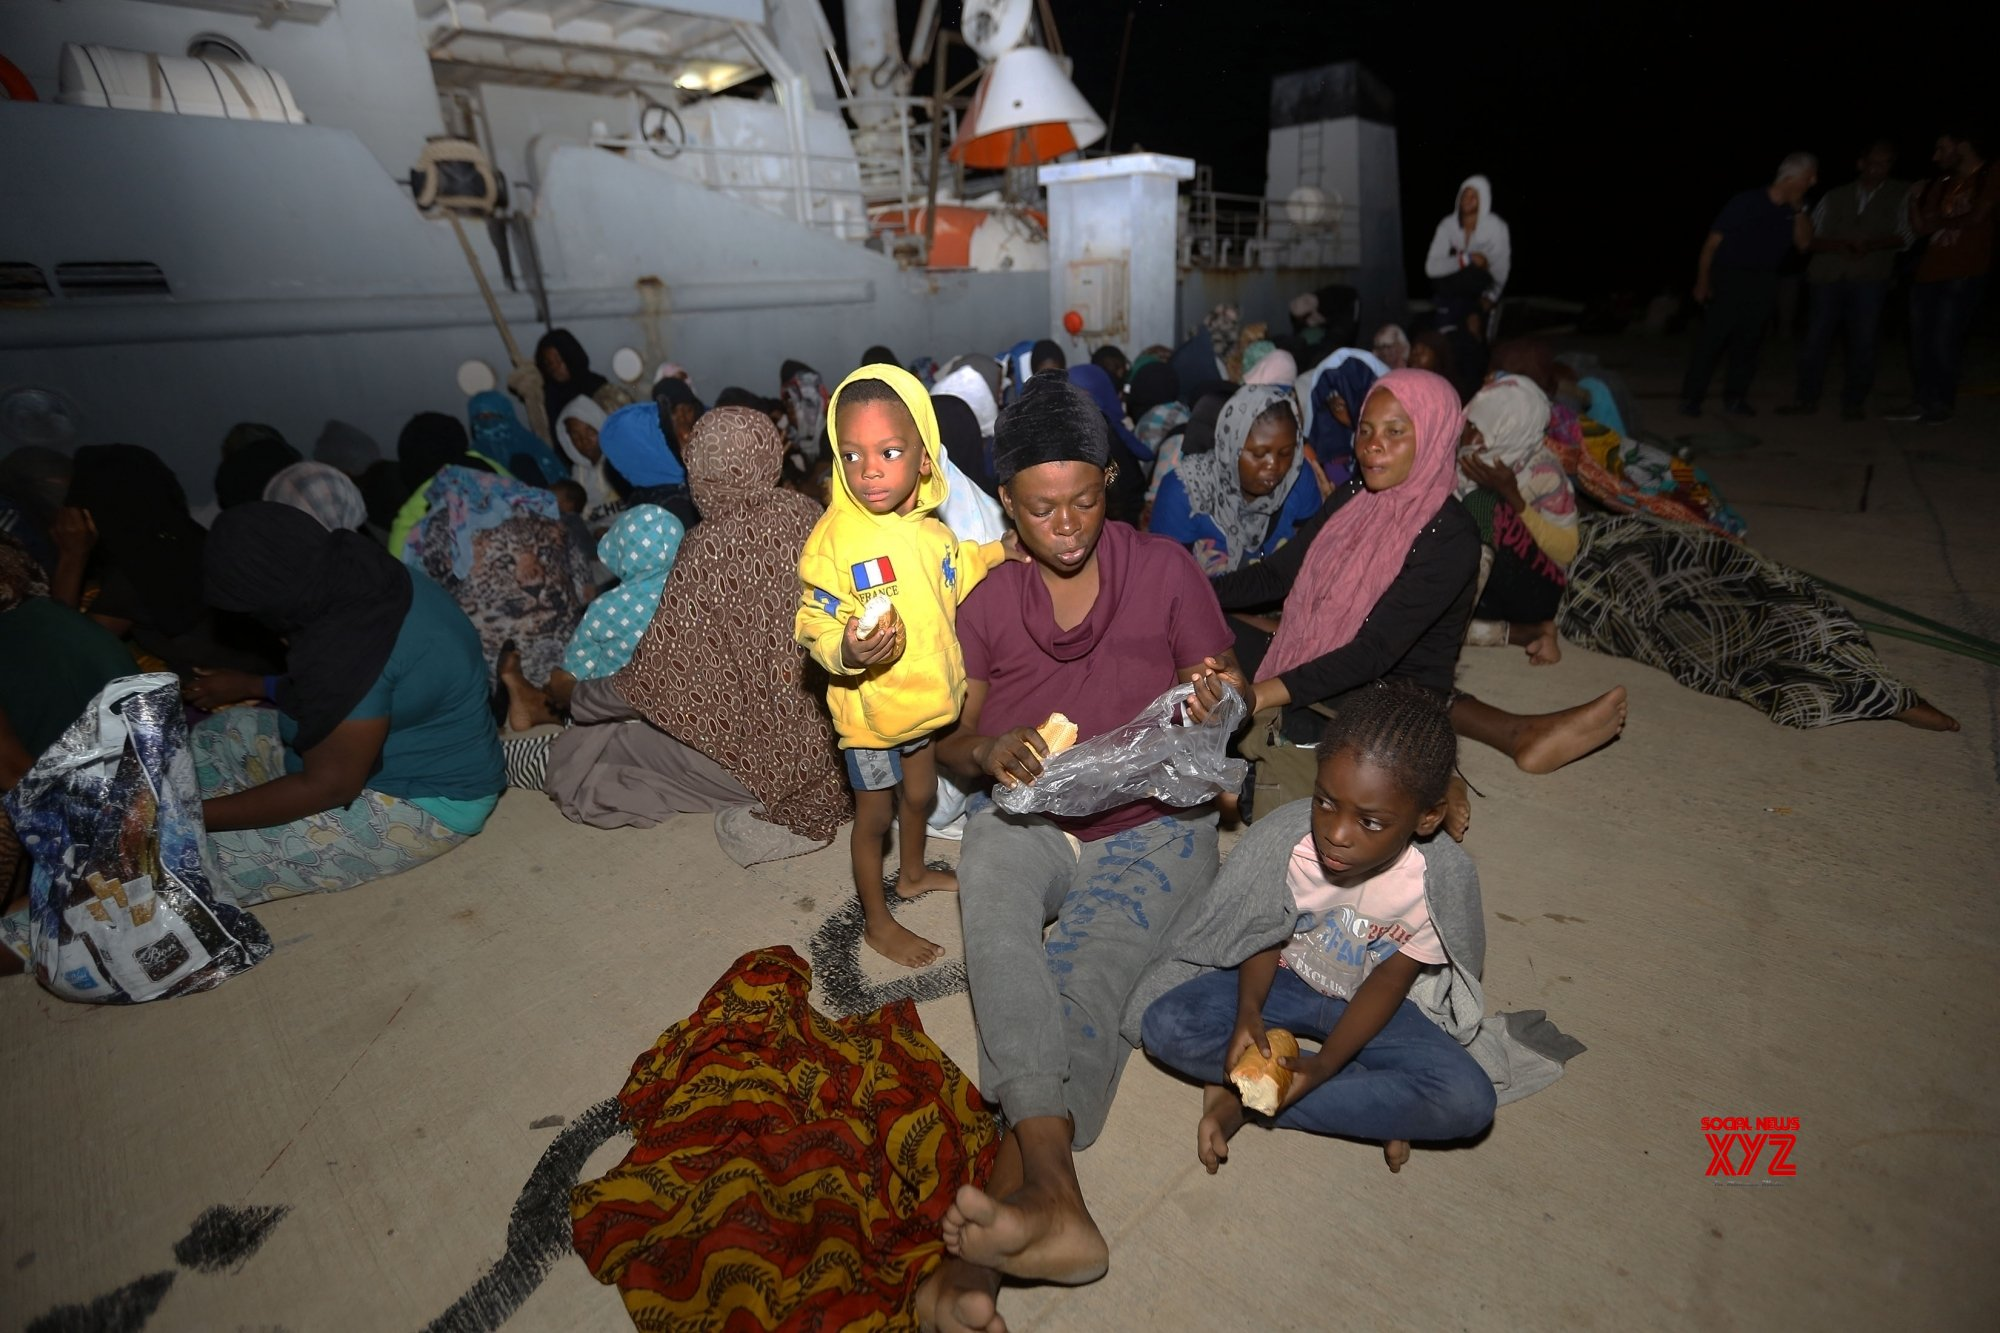 818 illegal migrants rescued off Libyan coast in a week